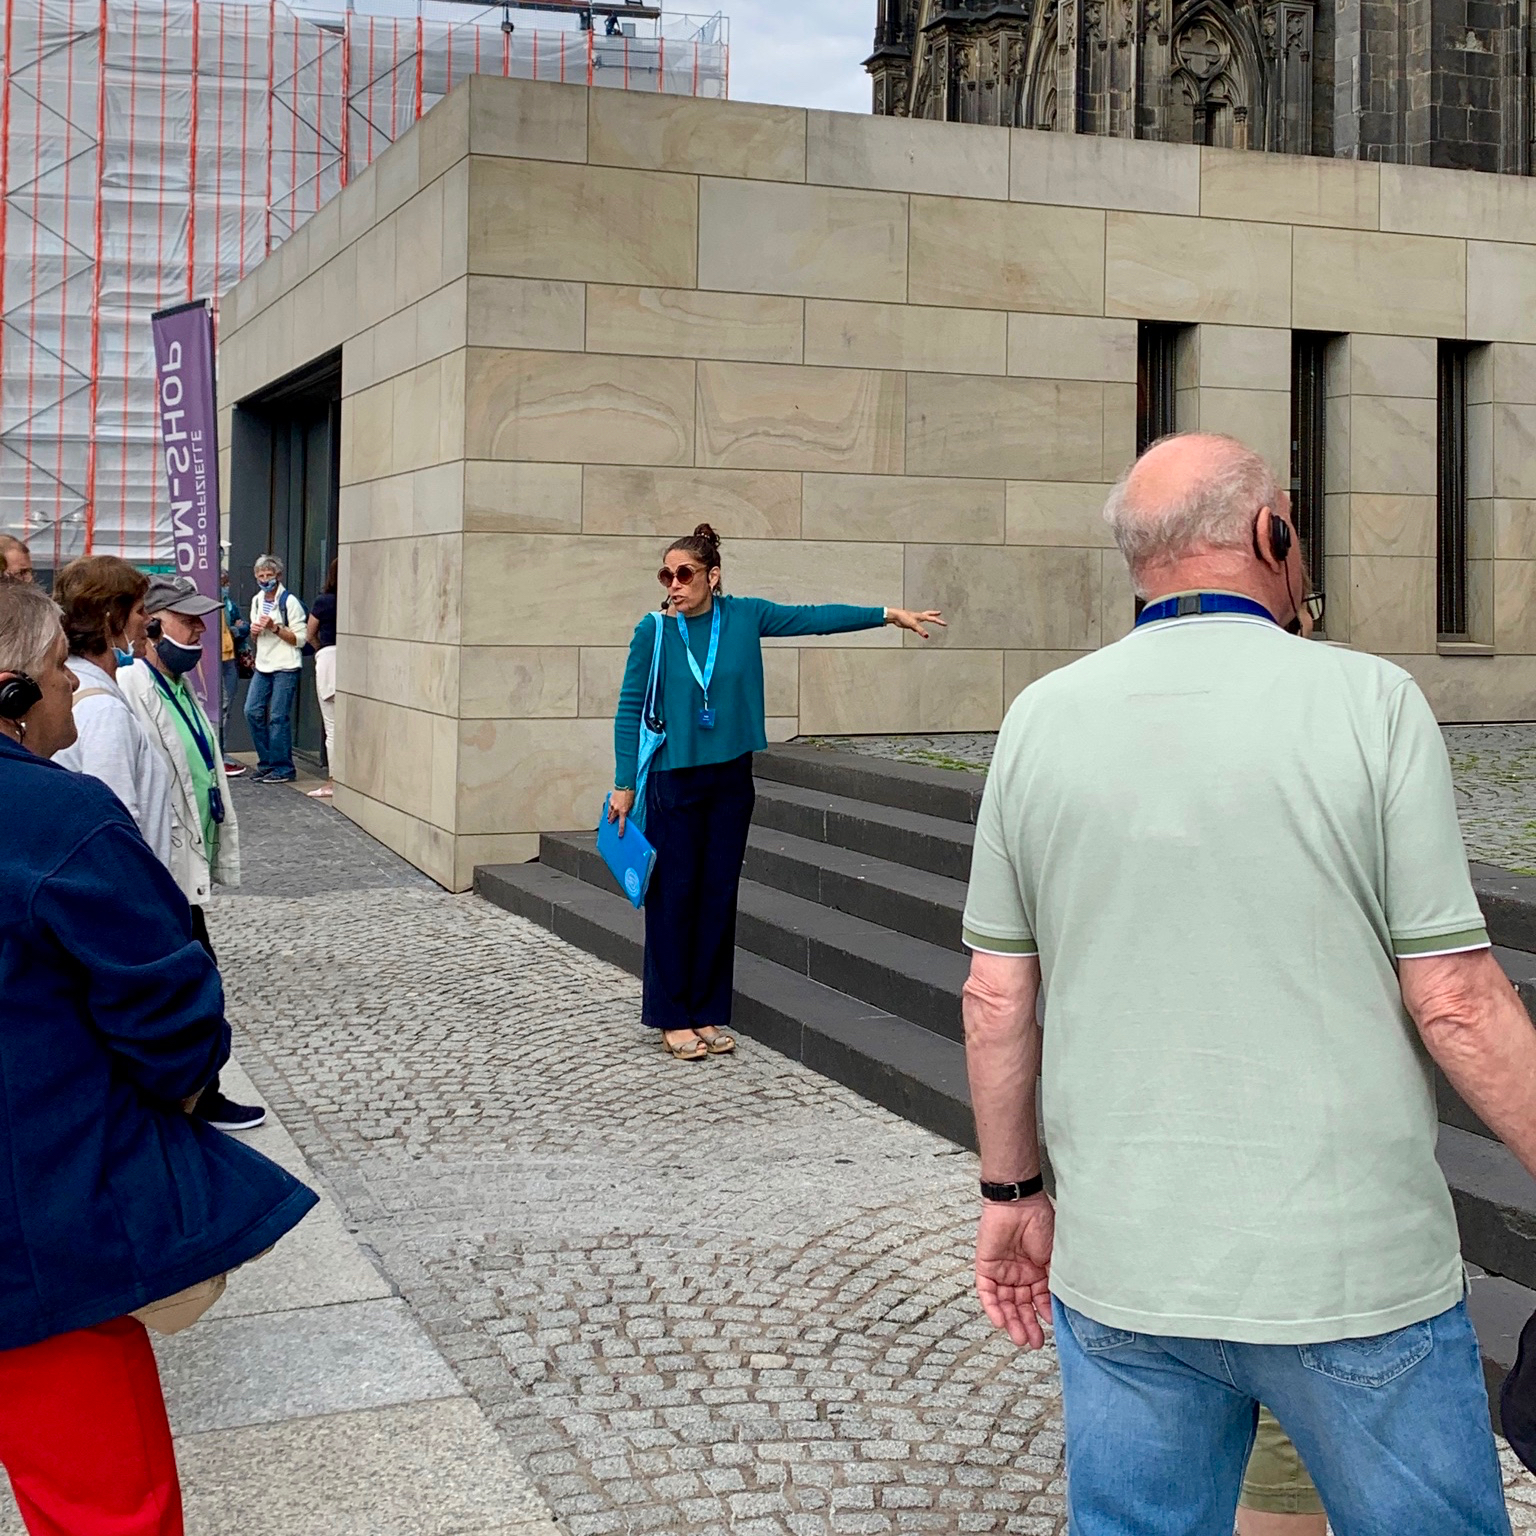 Tour guide explaining the Pope's terrace, Cologne